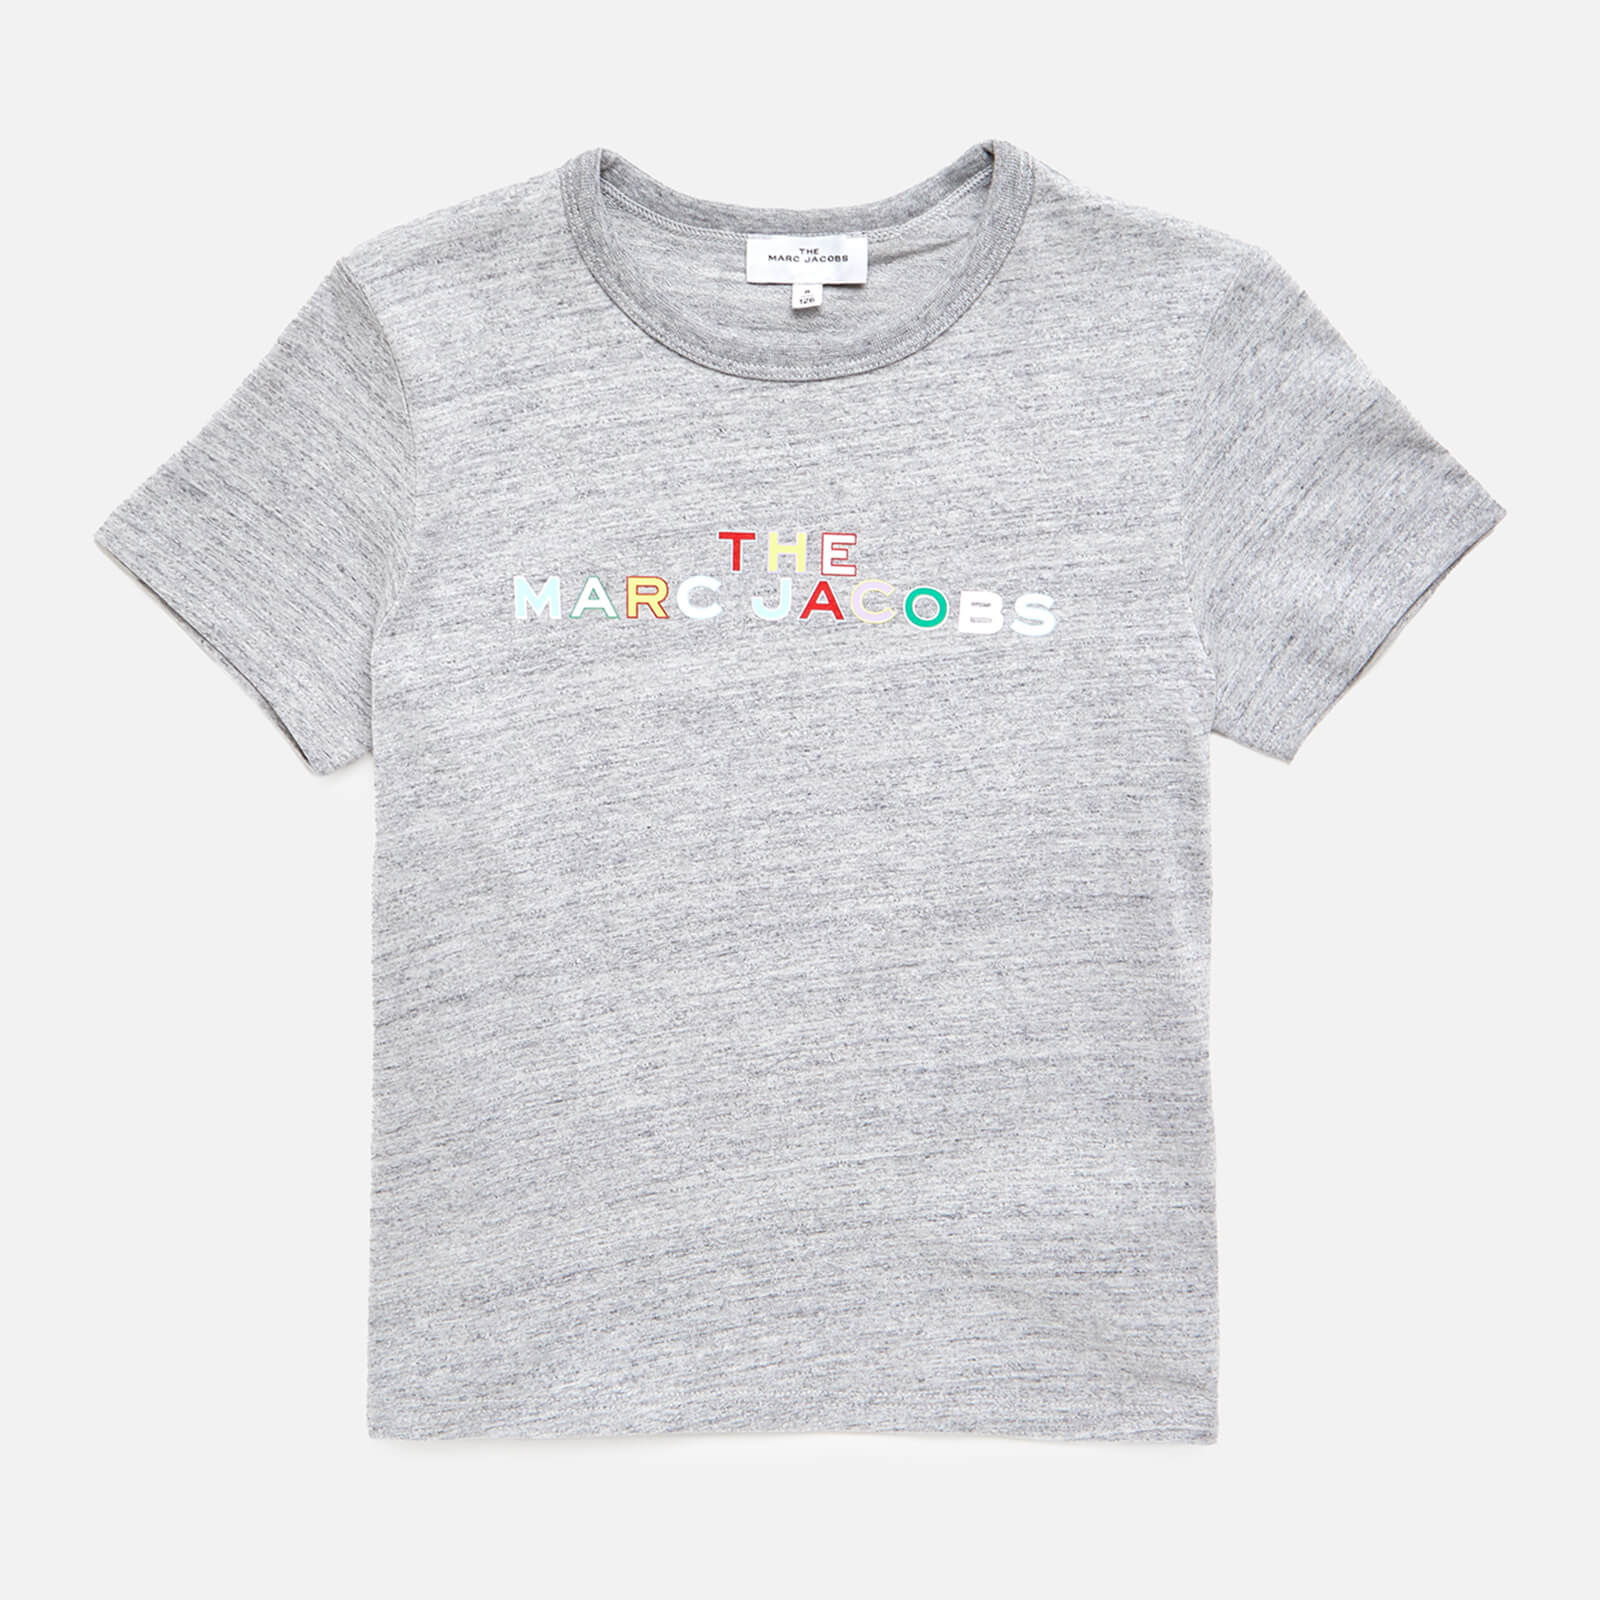 The Marc Jacobs Girls' Short Sleeve T-Shirt - Chine Grey - 4 Years